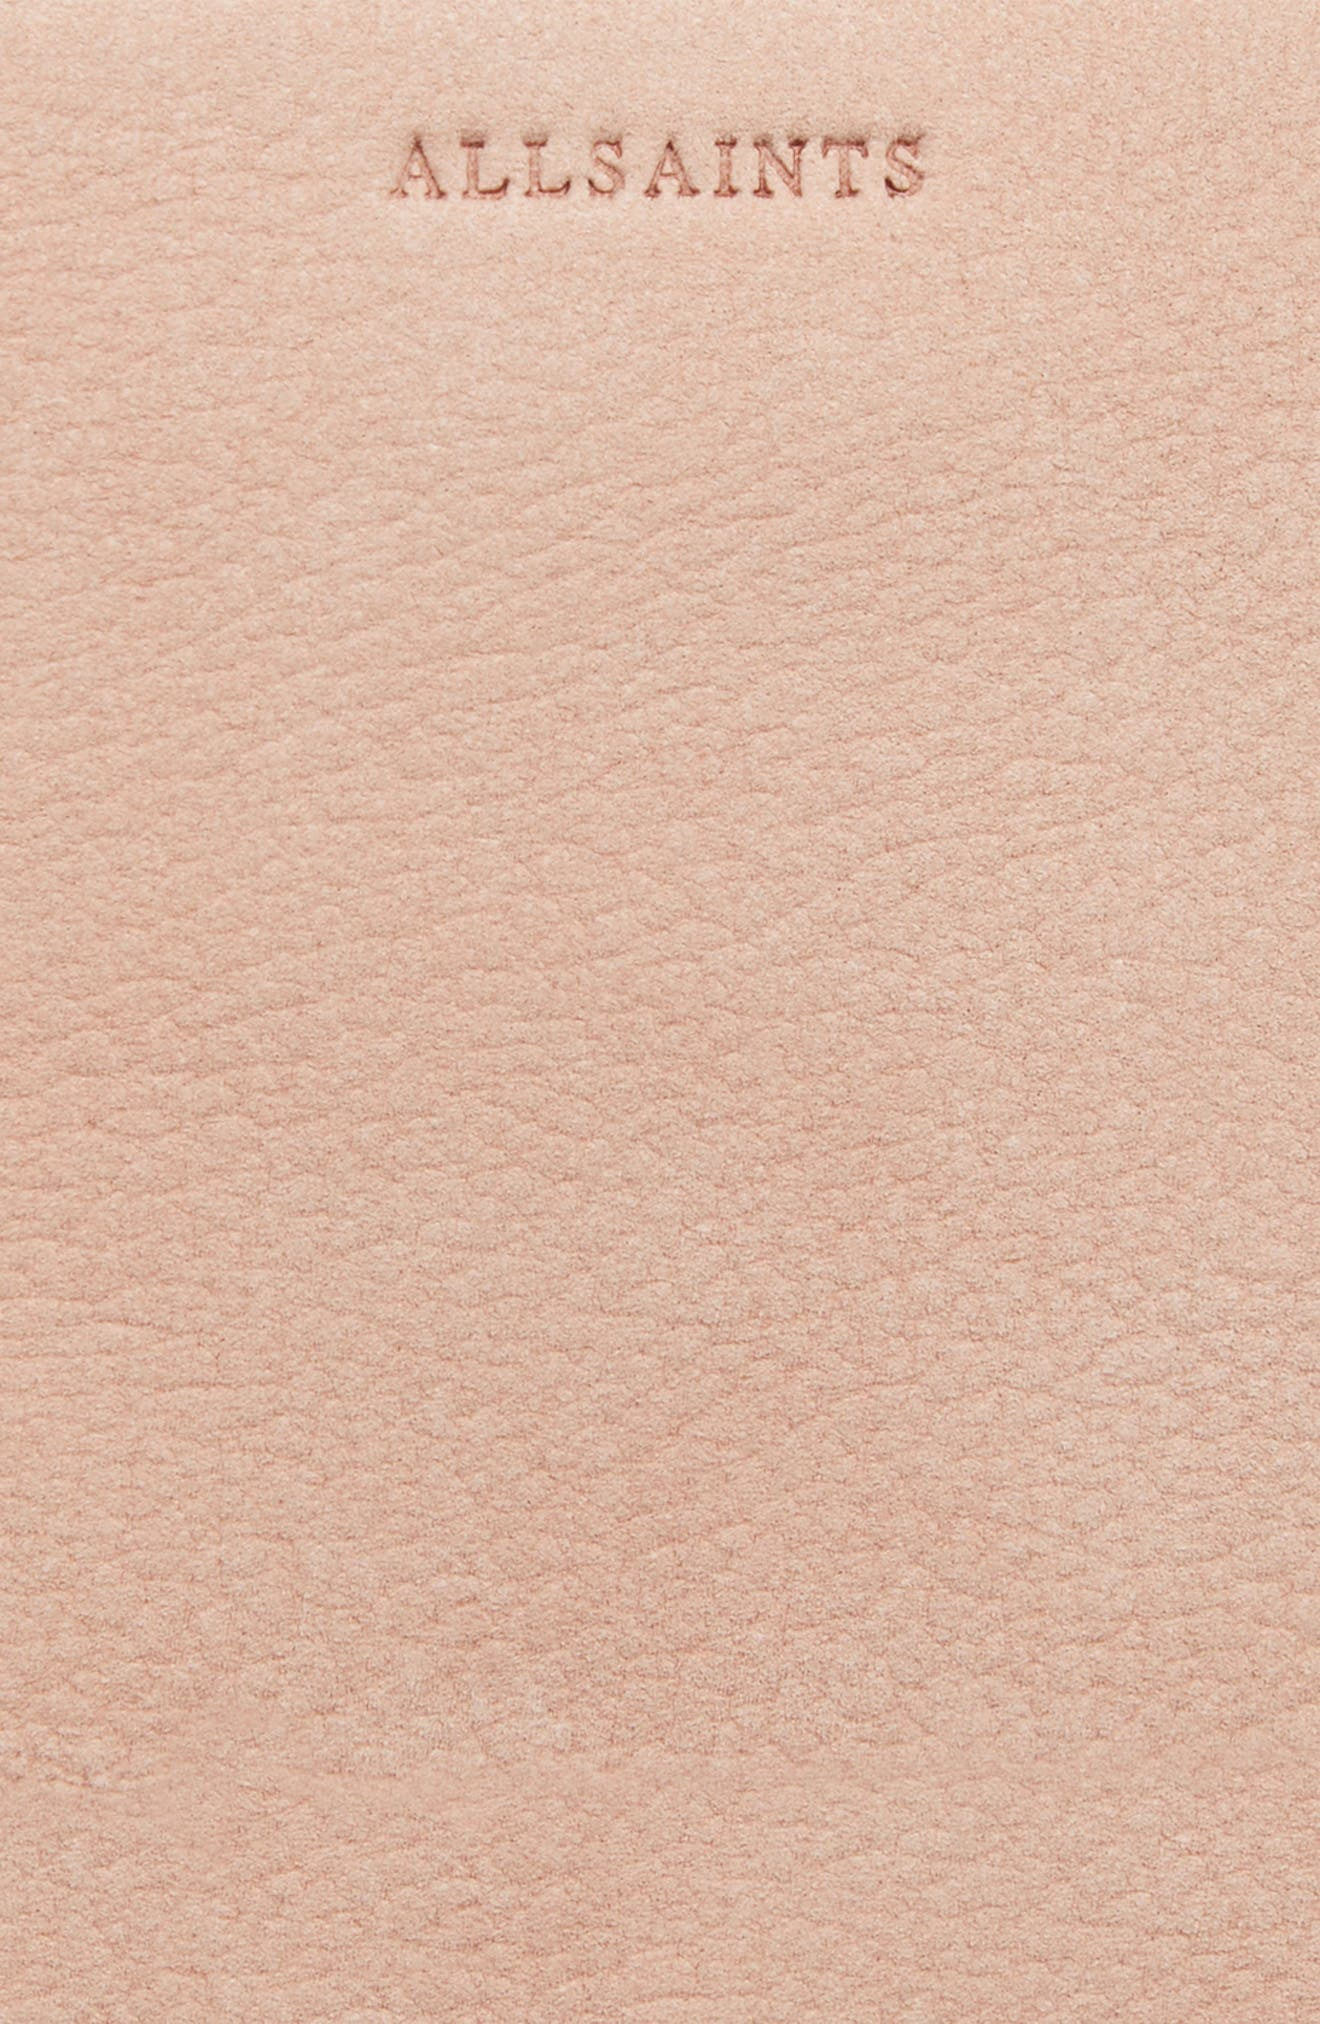 Mini Mast Leather North/South Tote,                             Alternate thumbnail 8, color,                             NUDE PINK